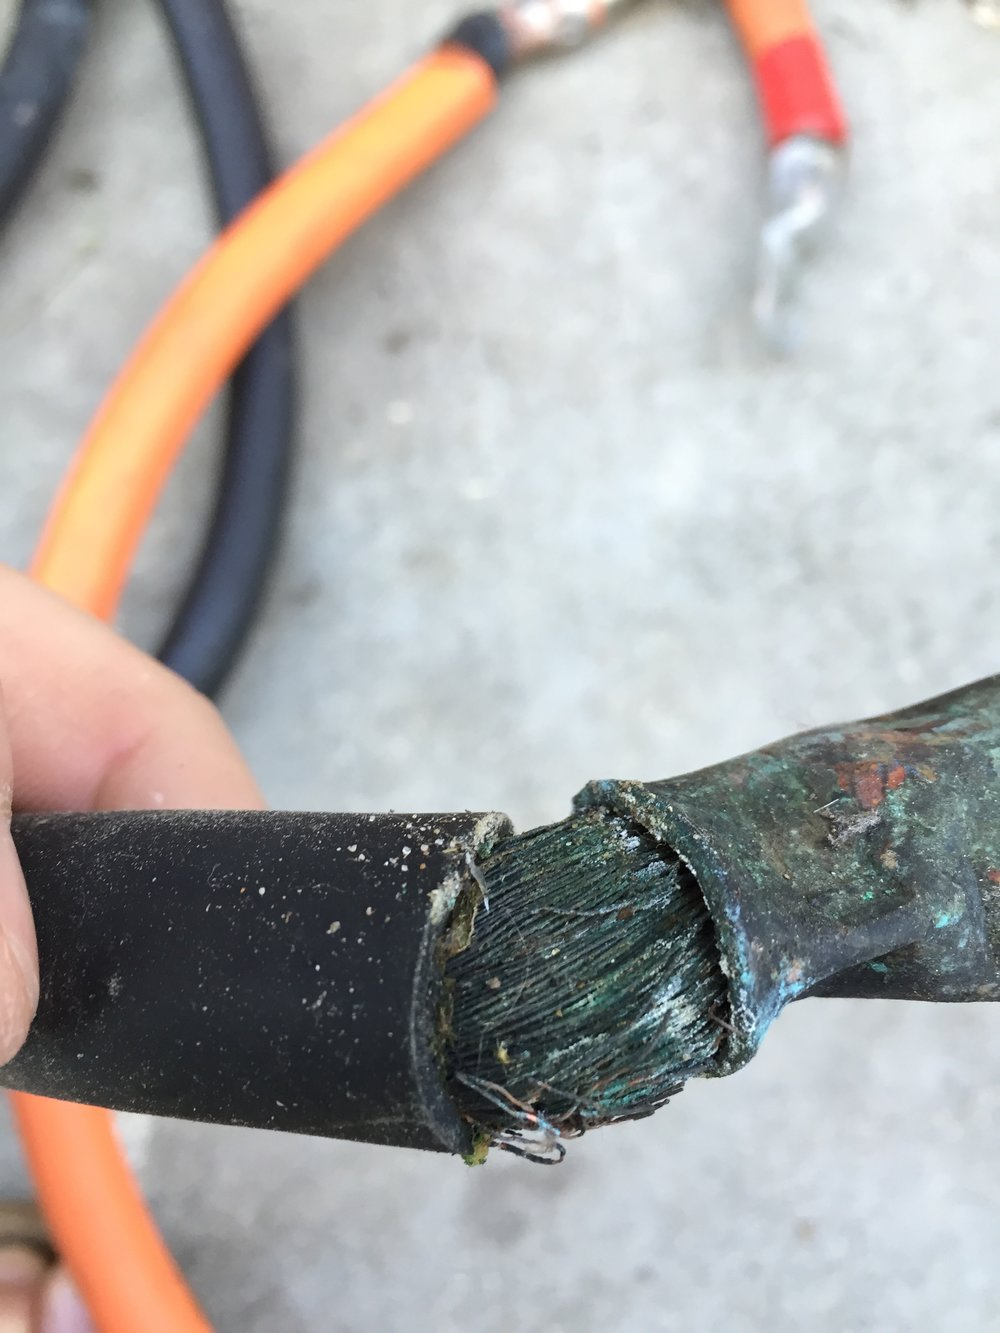 This is 3/0 welding cable, distinguishable by the many untined small copper strands twisted into many cables.